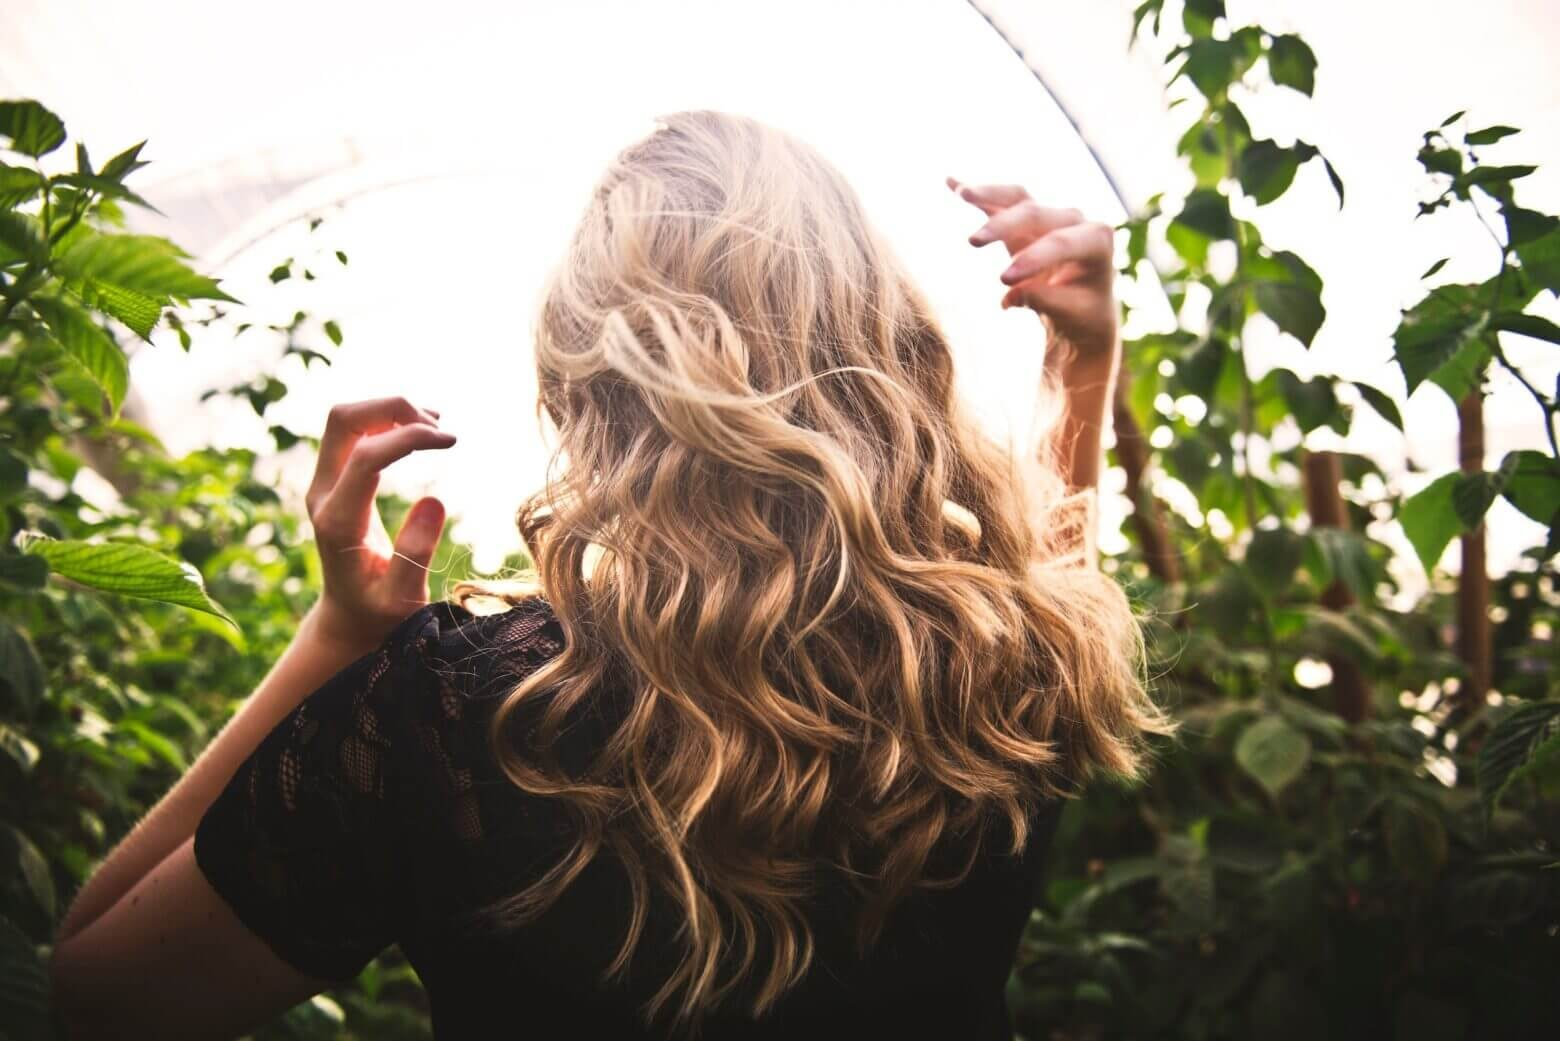 15 Basic Hair Care Tips That Make A Huge Difference To Its Health